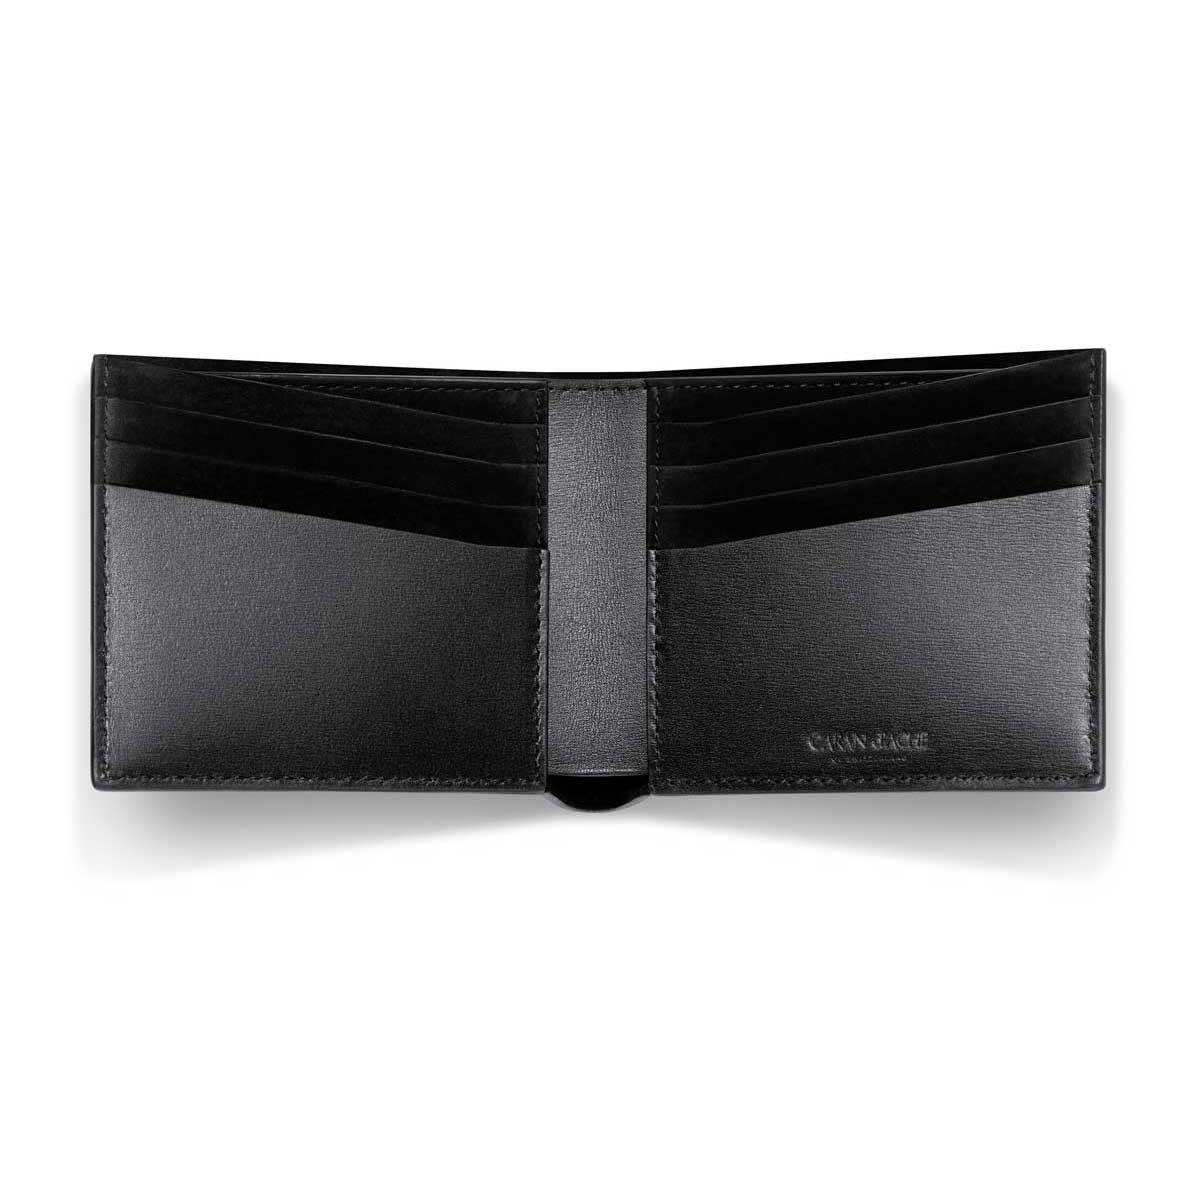 Caran d'Ache - Delvaux Leather 8 Card Mens Bifold Calf Wallet